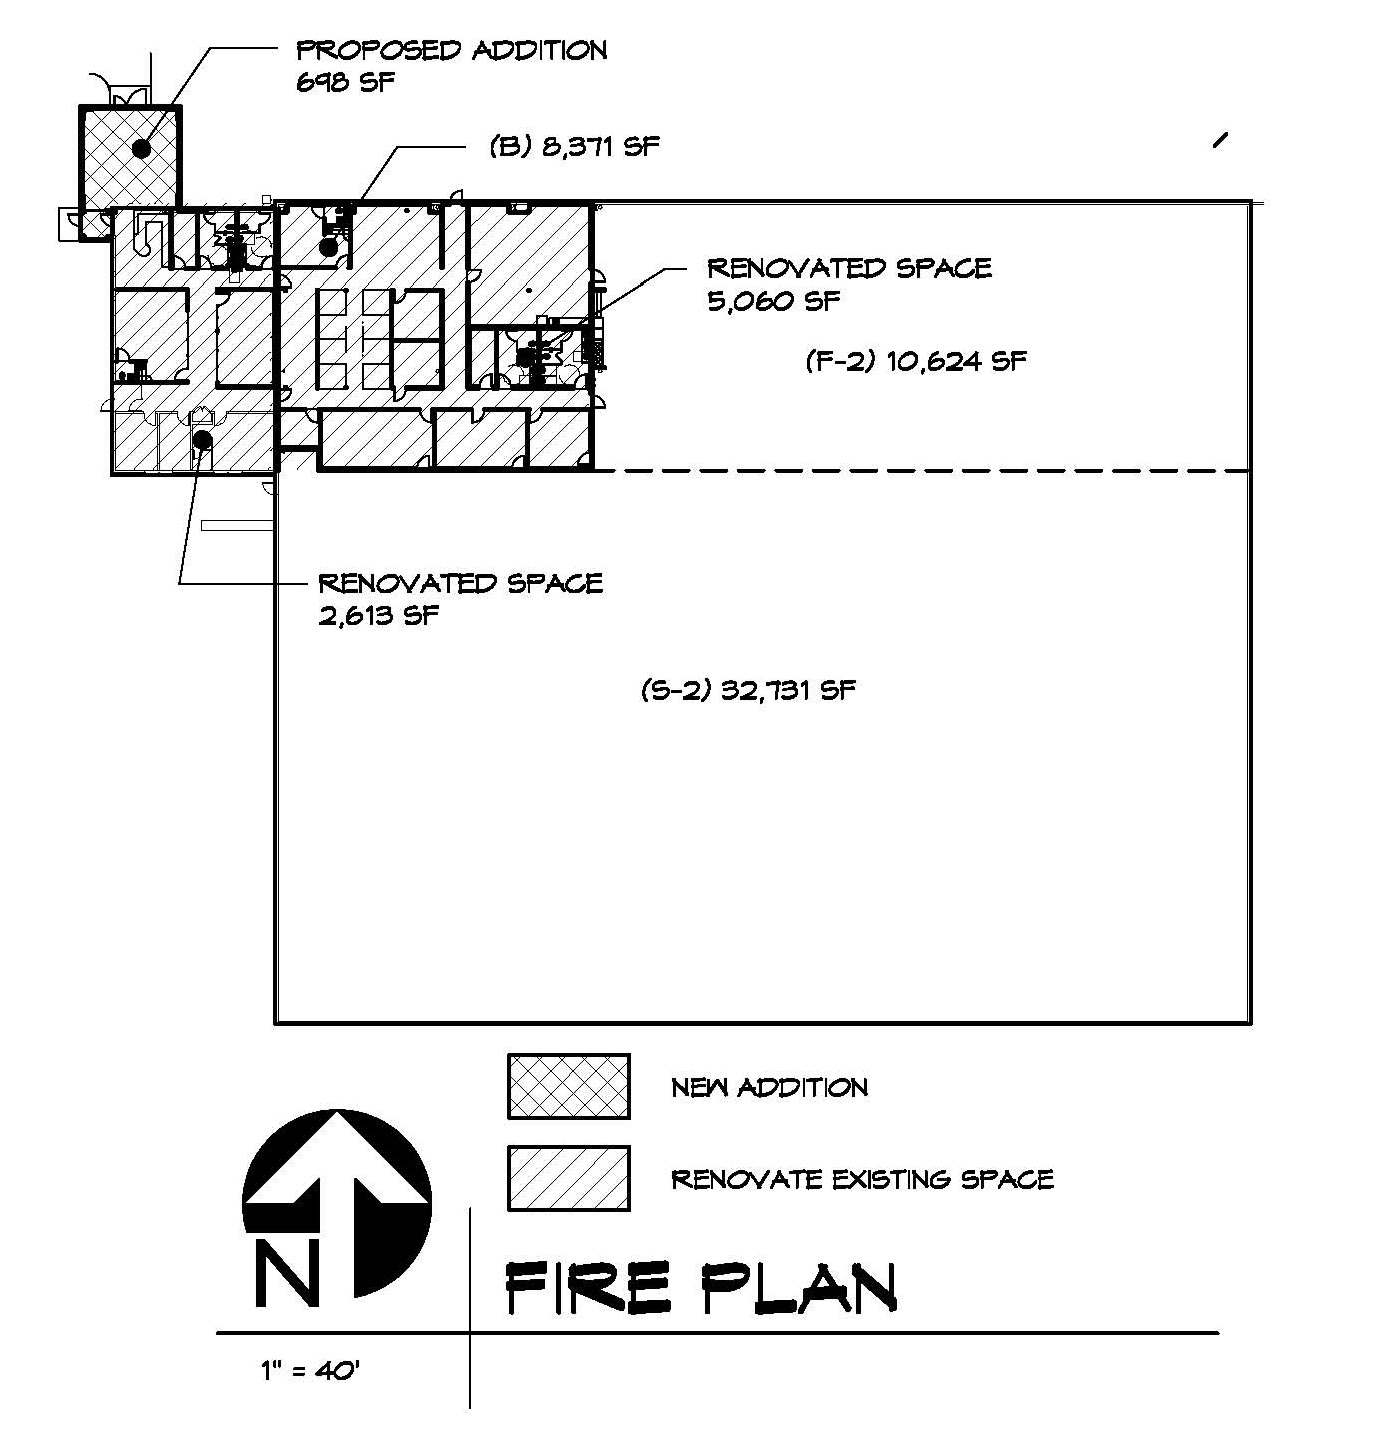 The floor plan of the existing warehouse facility showing areas to be renovated and the new entry addition.